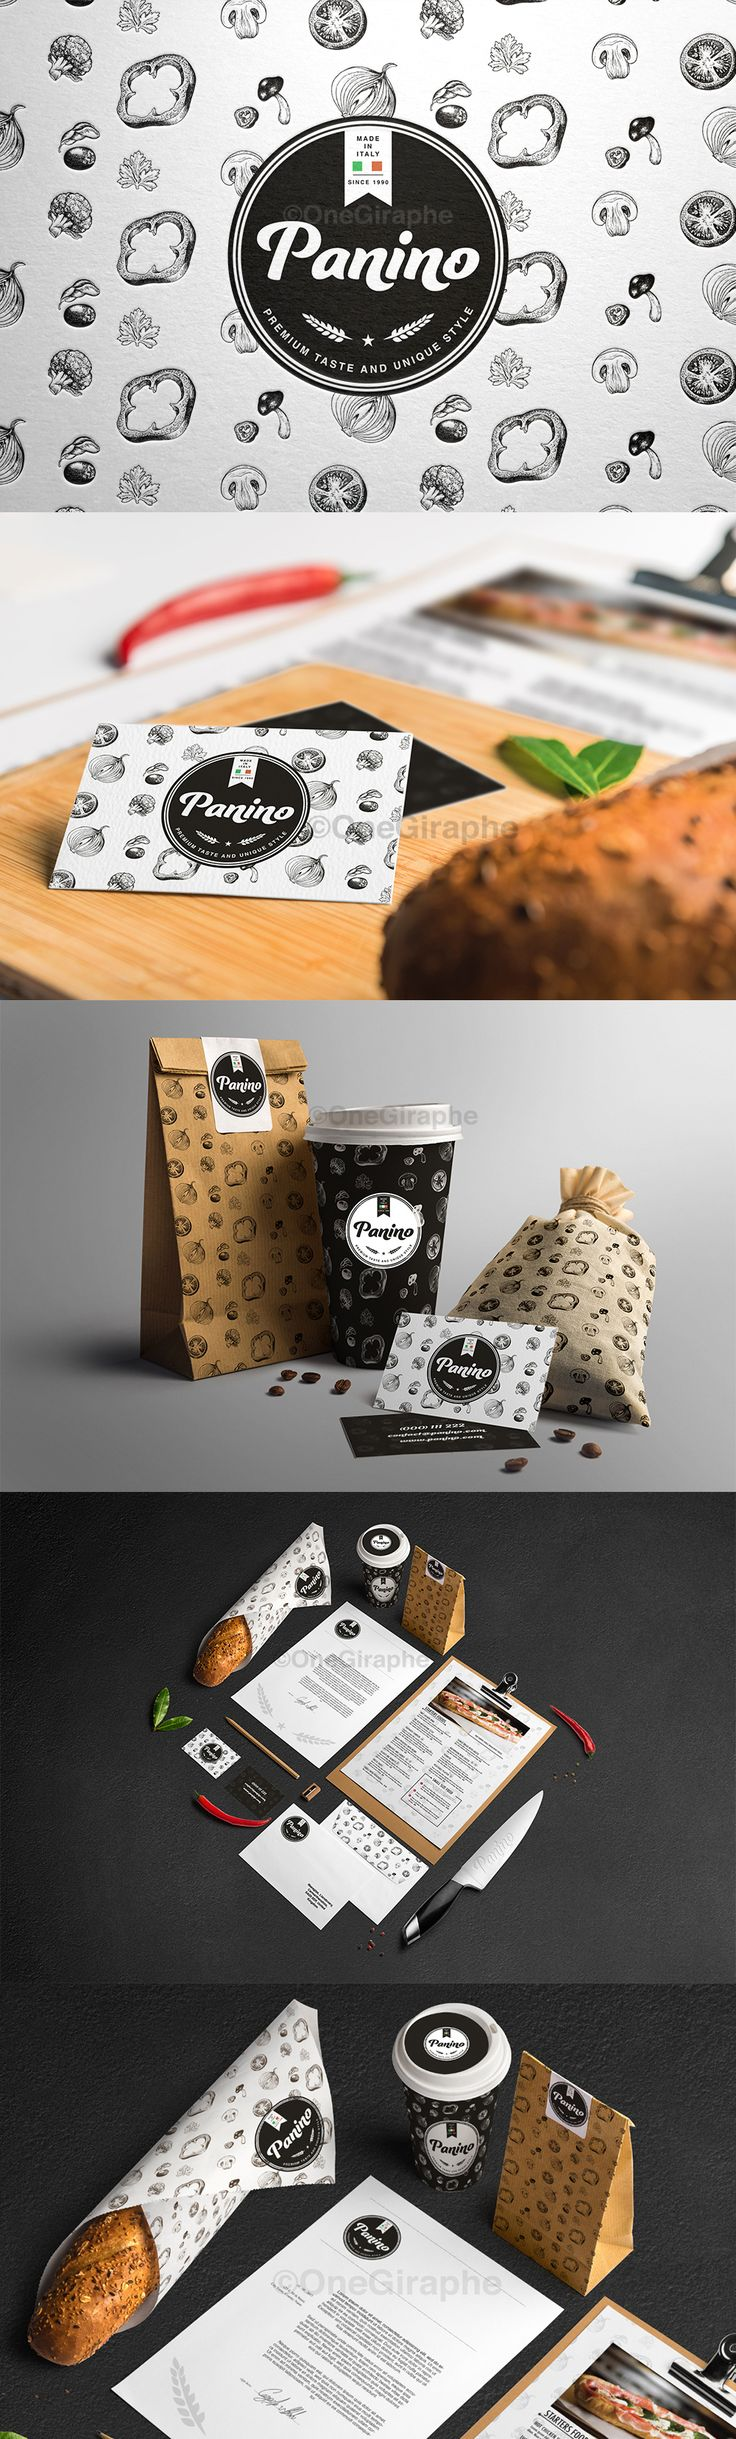 Panino by OneGiraffe let's eat Identity, packaging branding PD